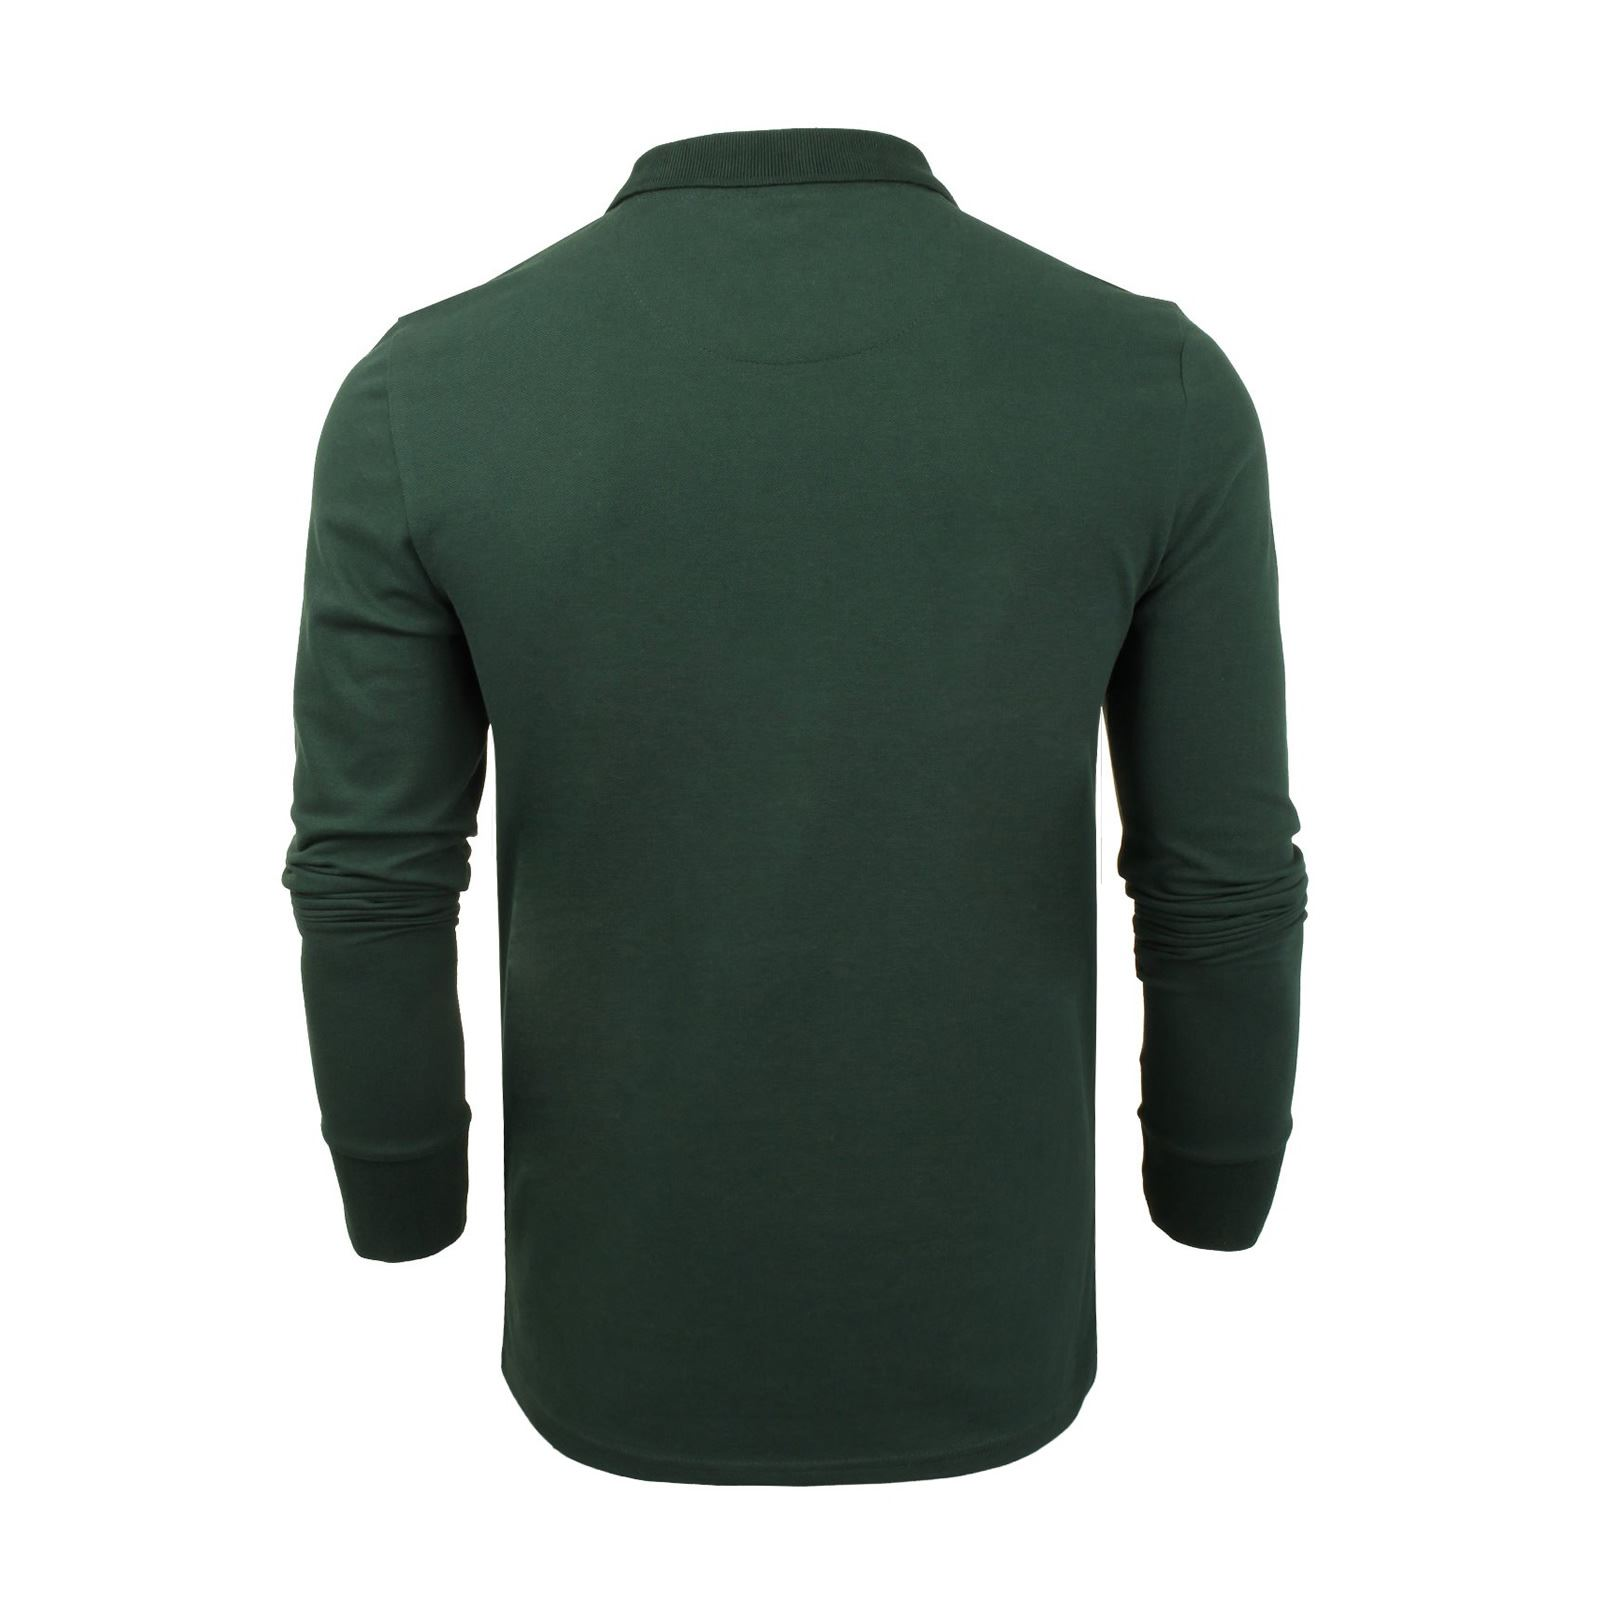 Mens-Polo-T-Shirt-Brave-Soul-Lincoln-Long-Sleeve-Cotton-Pique-Casual-Top thumbnail 13